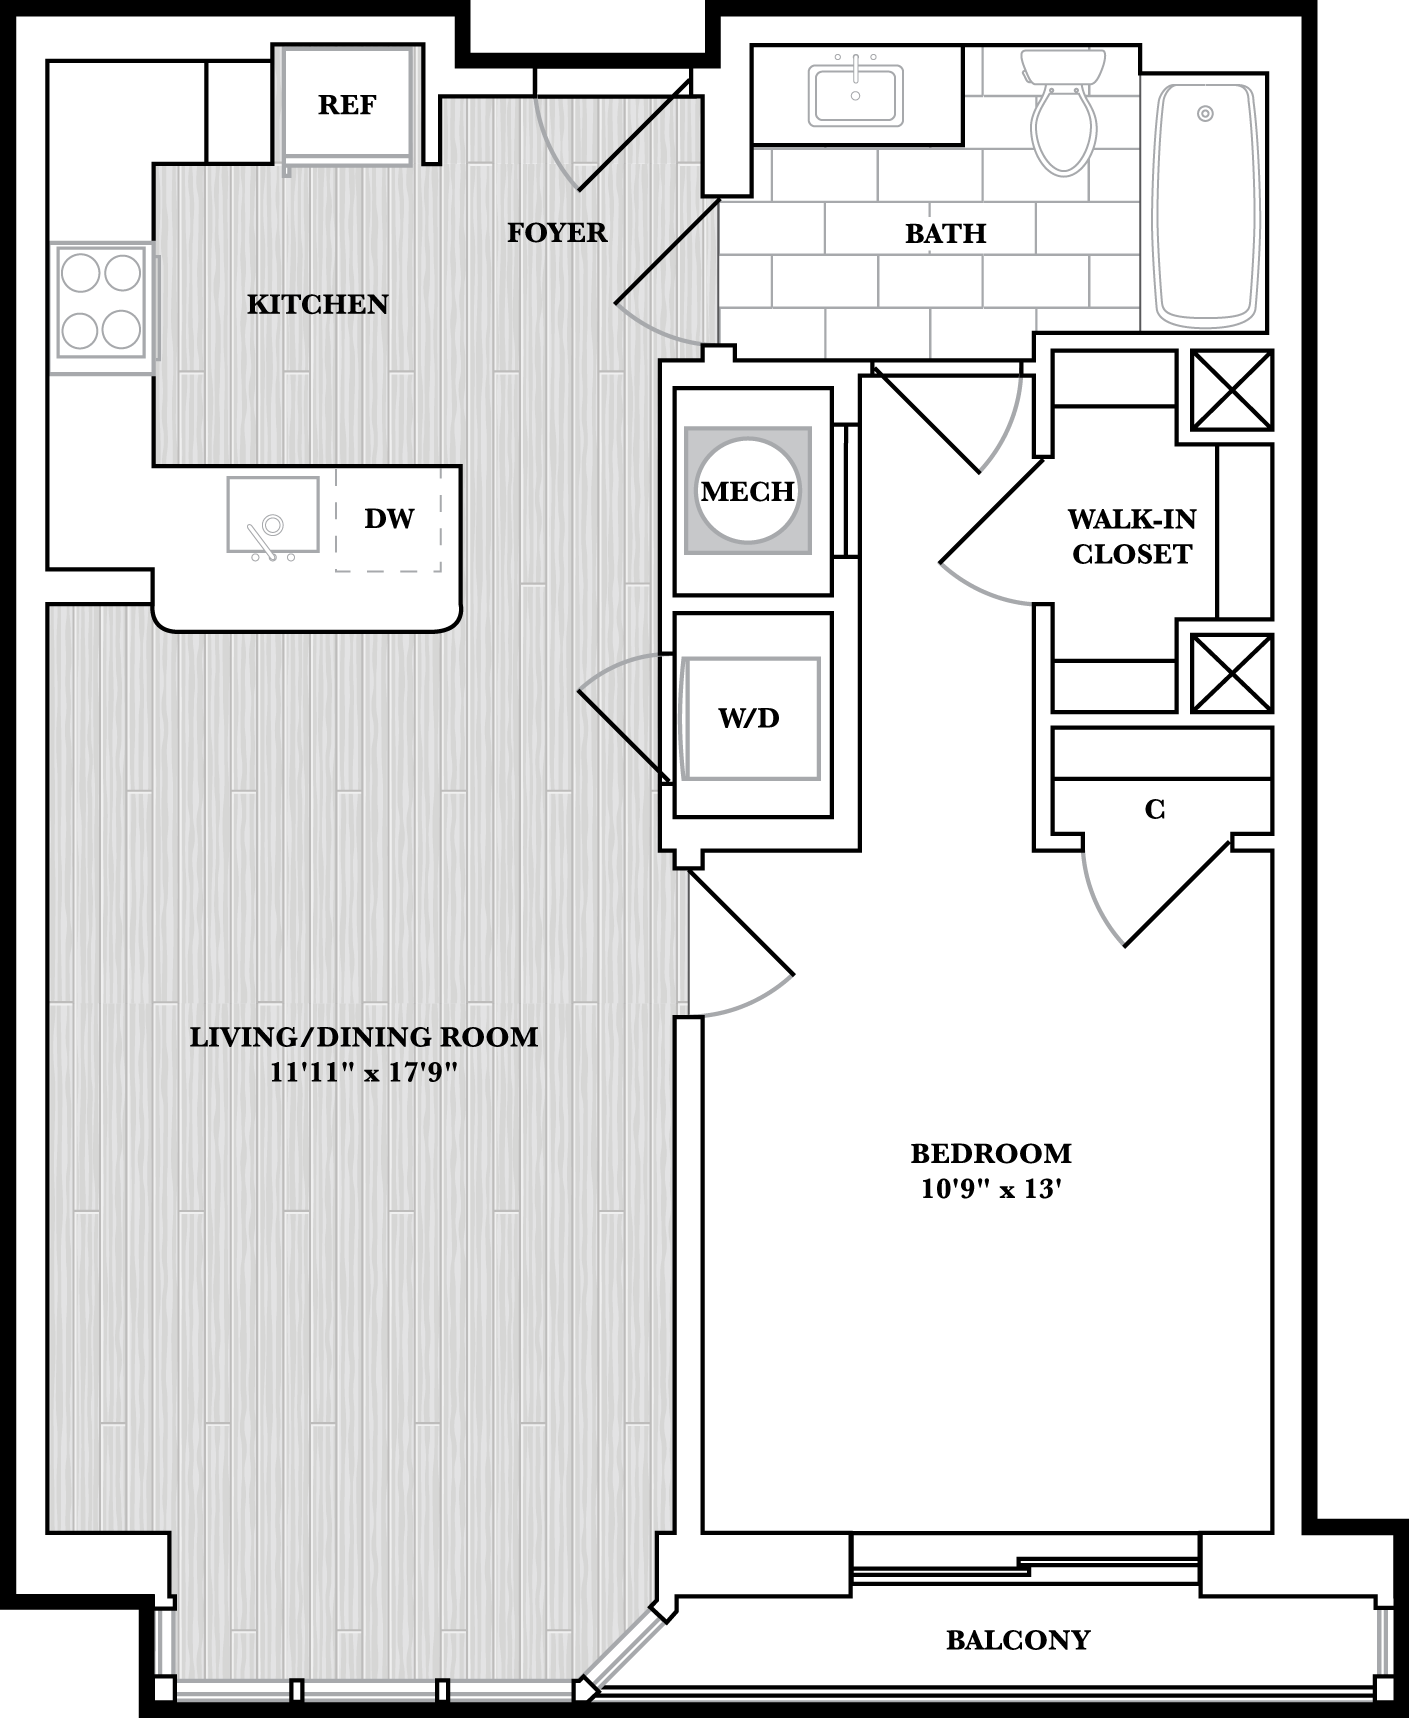 floorplan image of N225